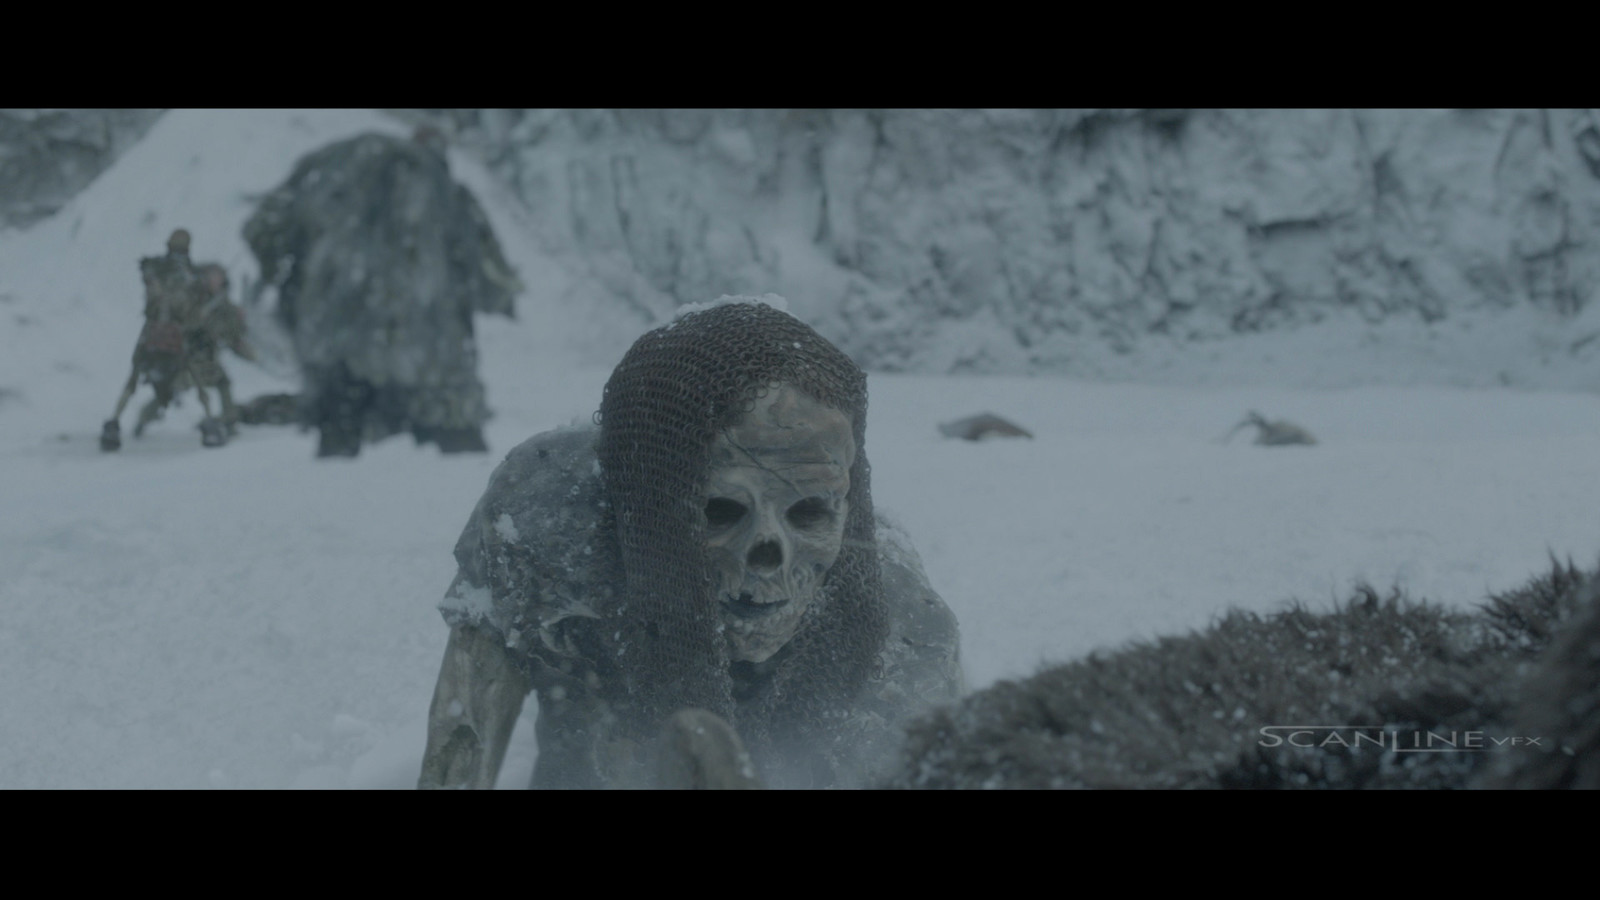 Compositing and integration work for Game of Thrones Season 5. Work done at Scanline VFX with a team of 3D artists. Software used: Nuke.  Full CG Character body parts, FX Integration, 2D Snow Enhancement, Plate Integration.